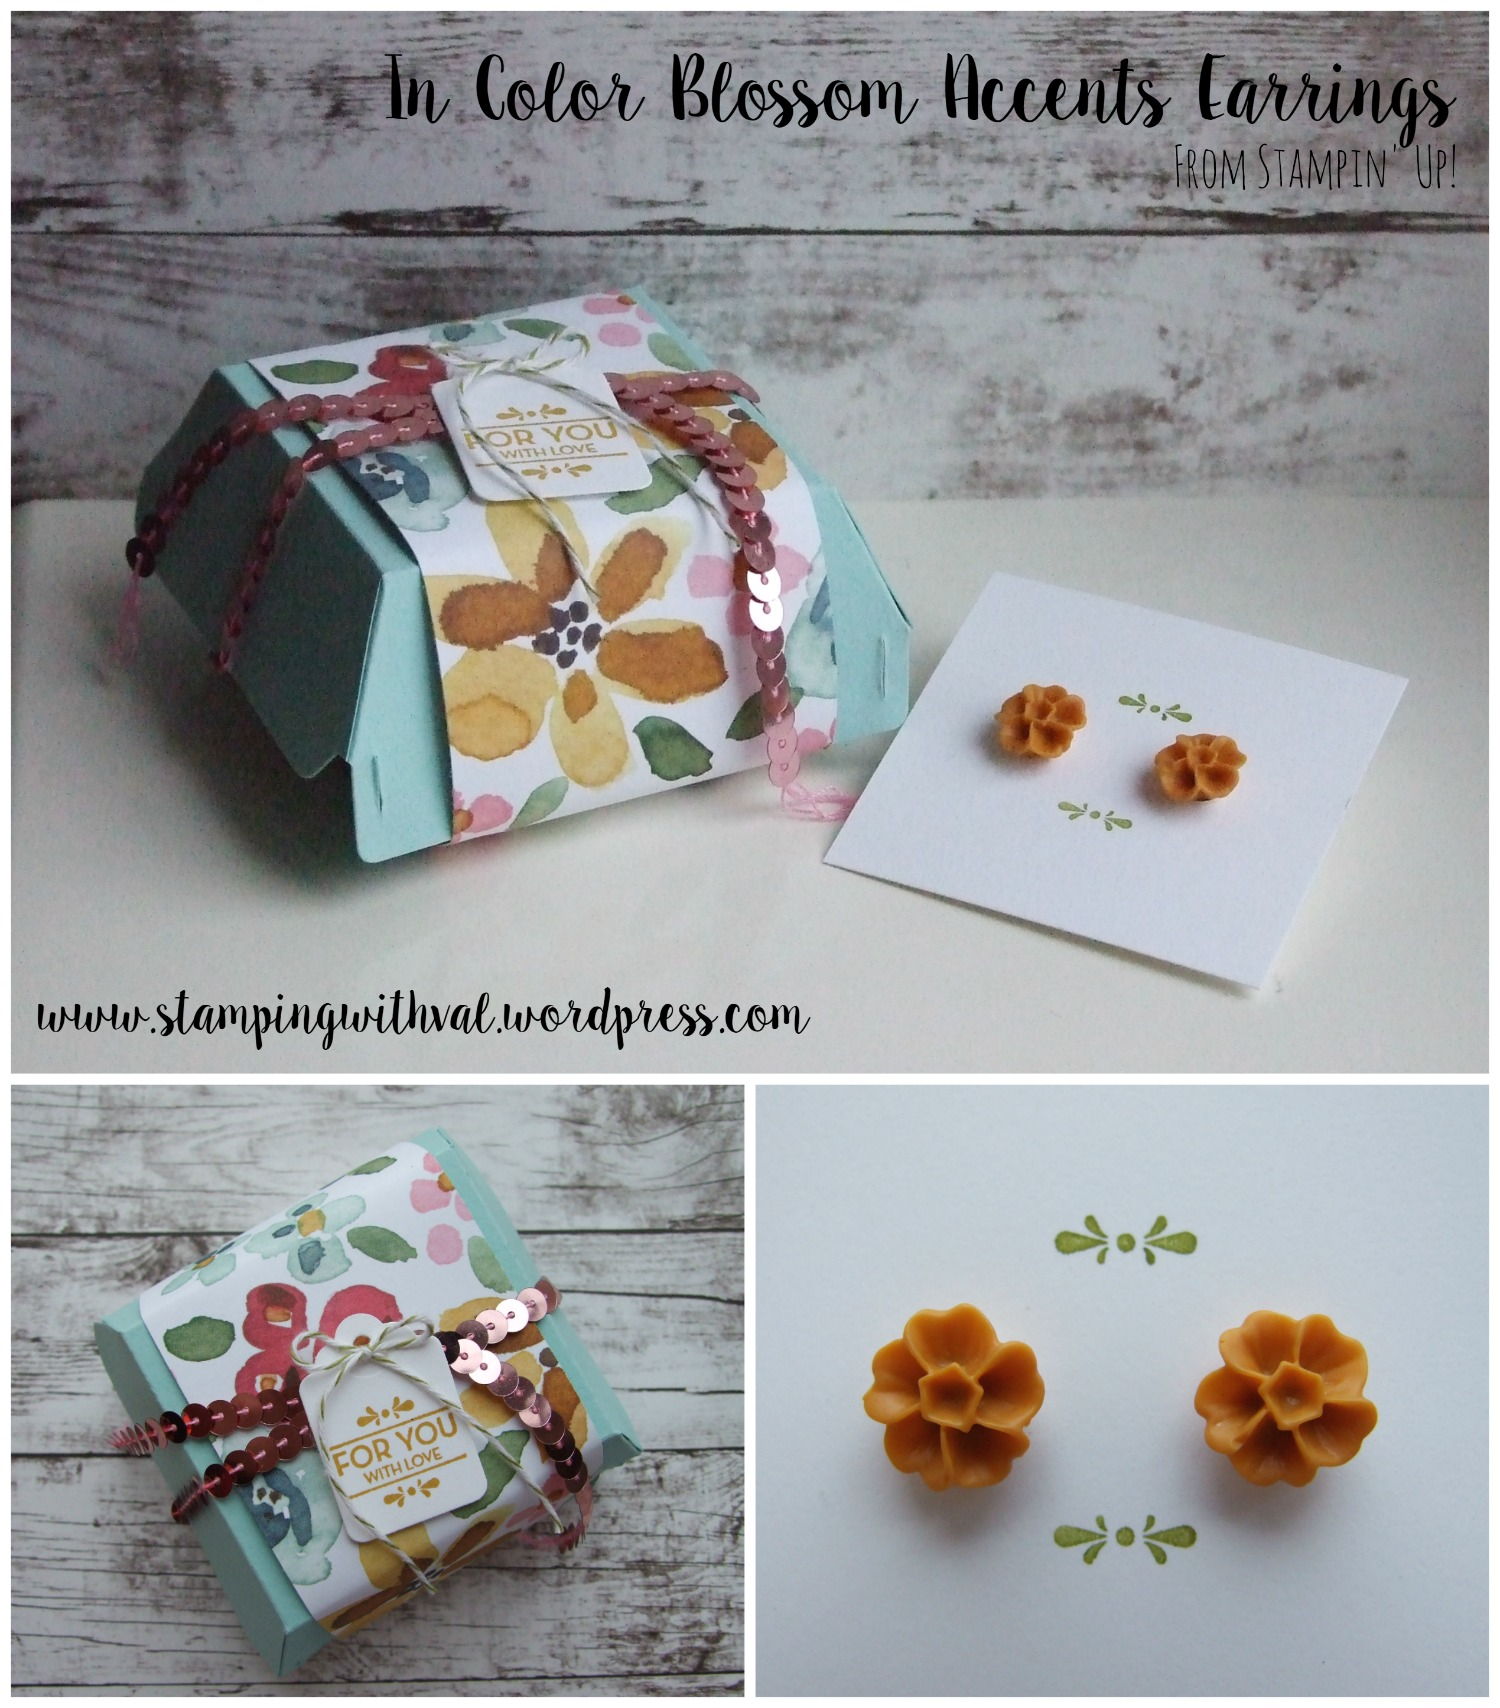 Stampin' Up - In Color Blossom Accents - Hamburger Die - Stamping With Val - Valerie Moody; Independent Stampin' Up! Demonstrator. X